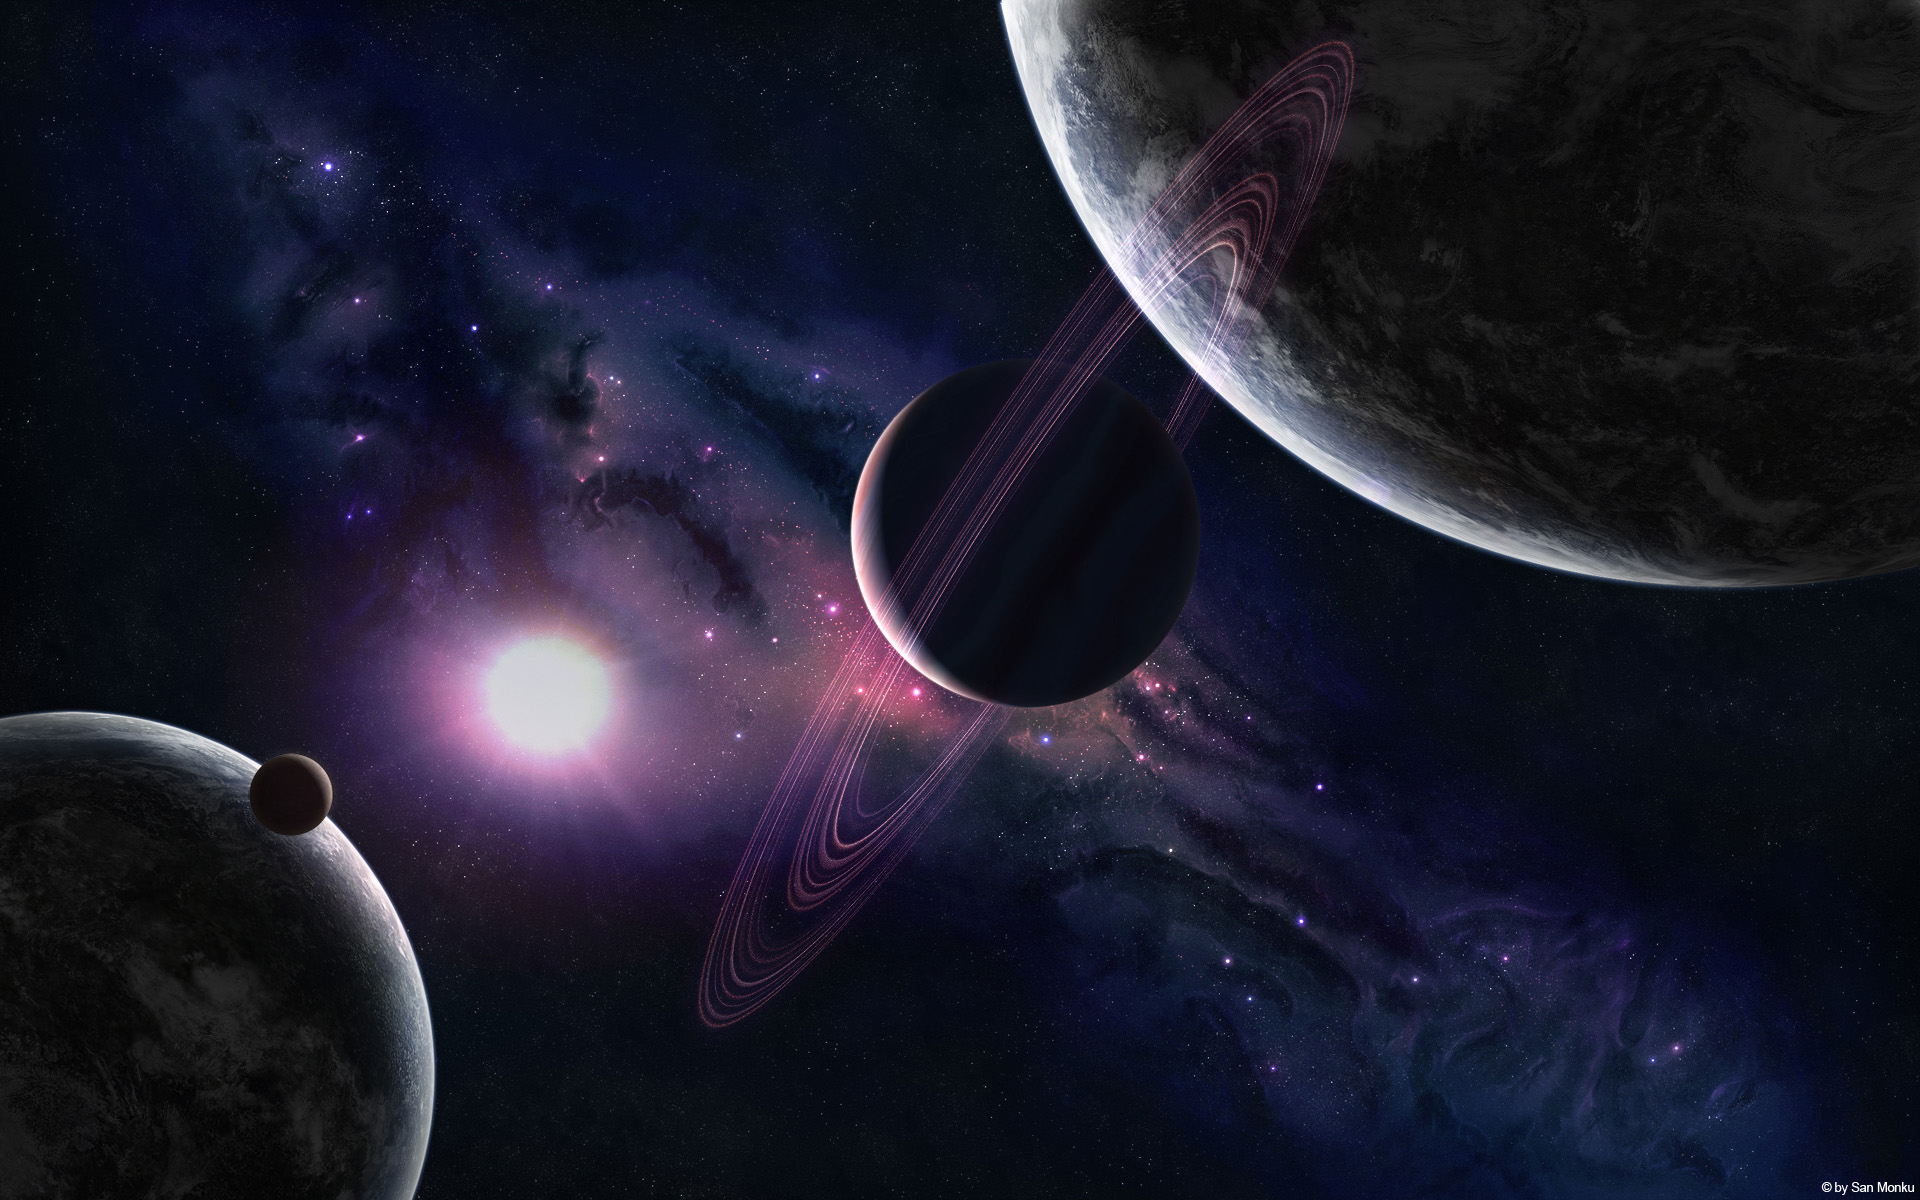 Space planet wallpaper Wallpapers   HD Wallpapers 86471 1920x1200